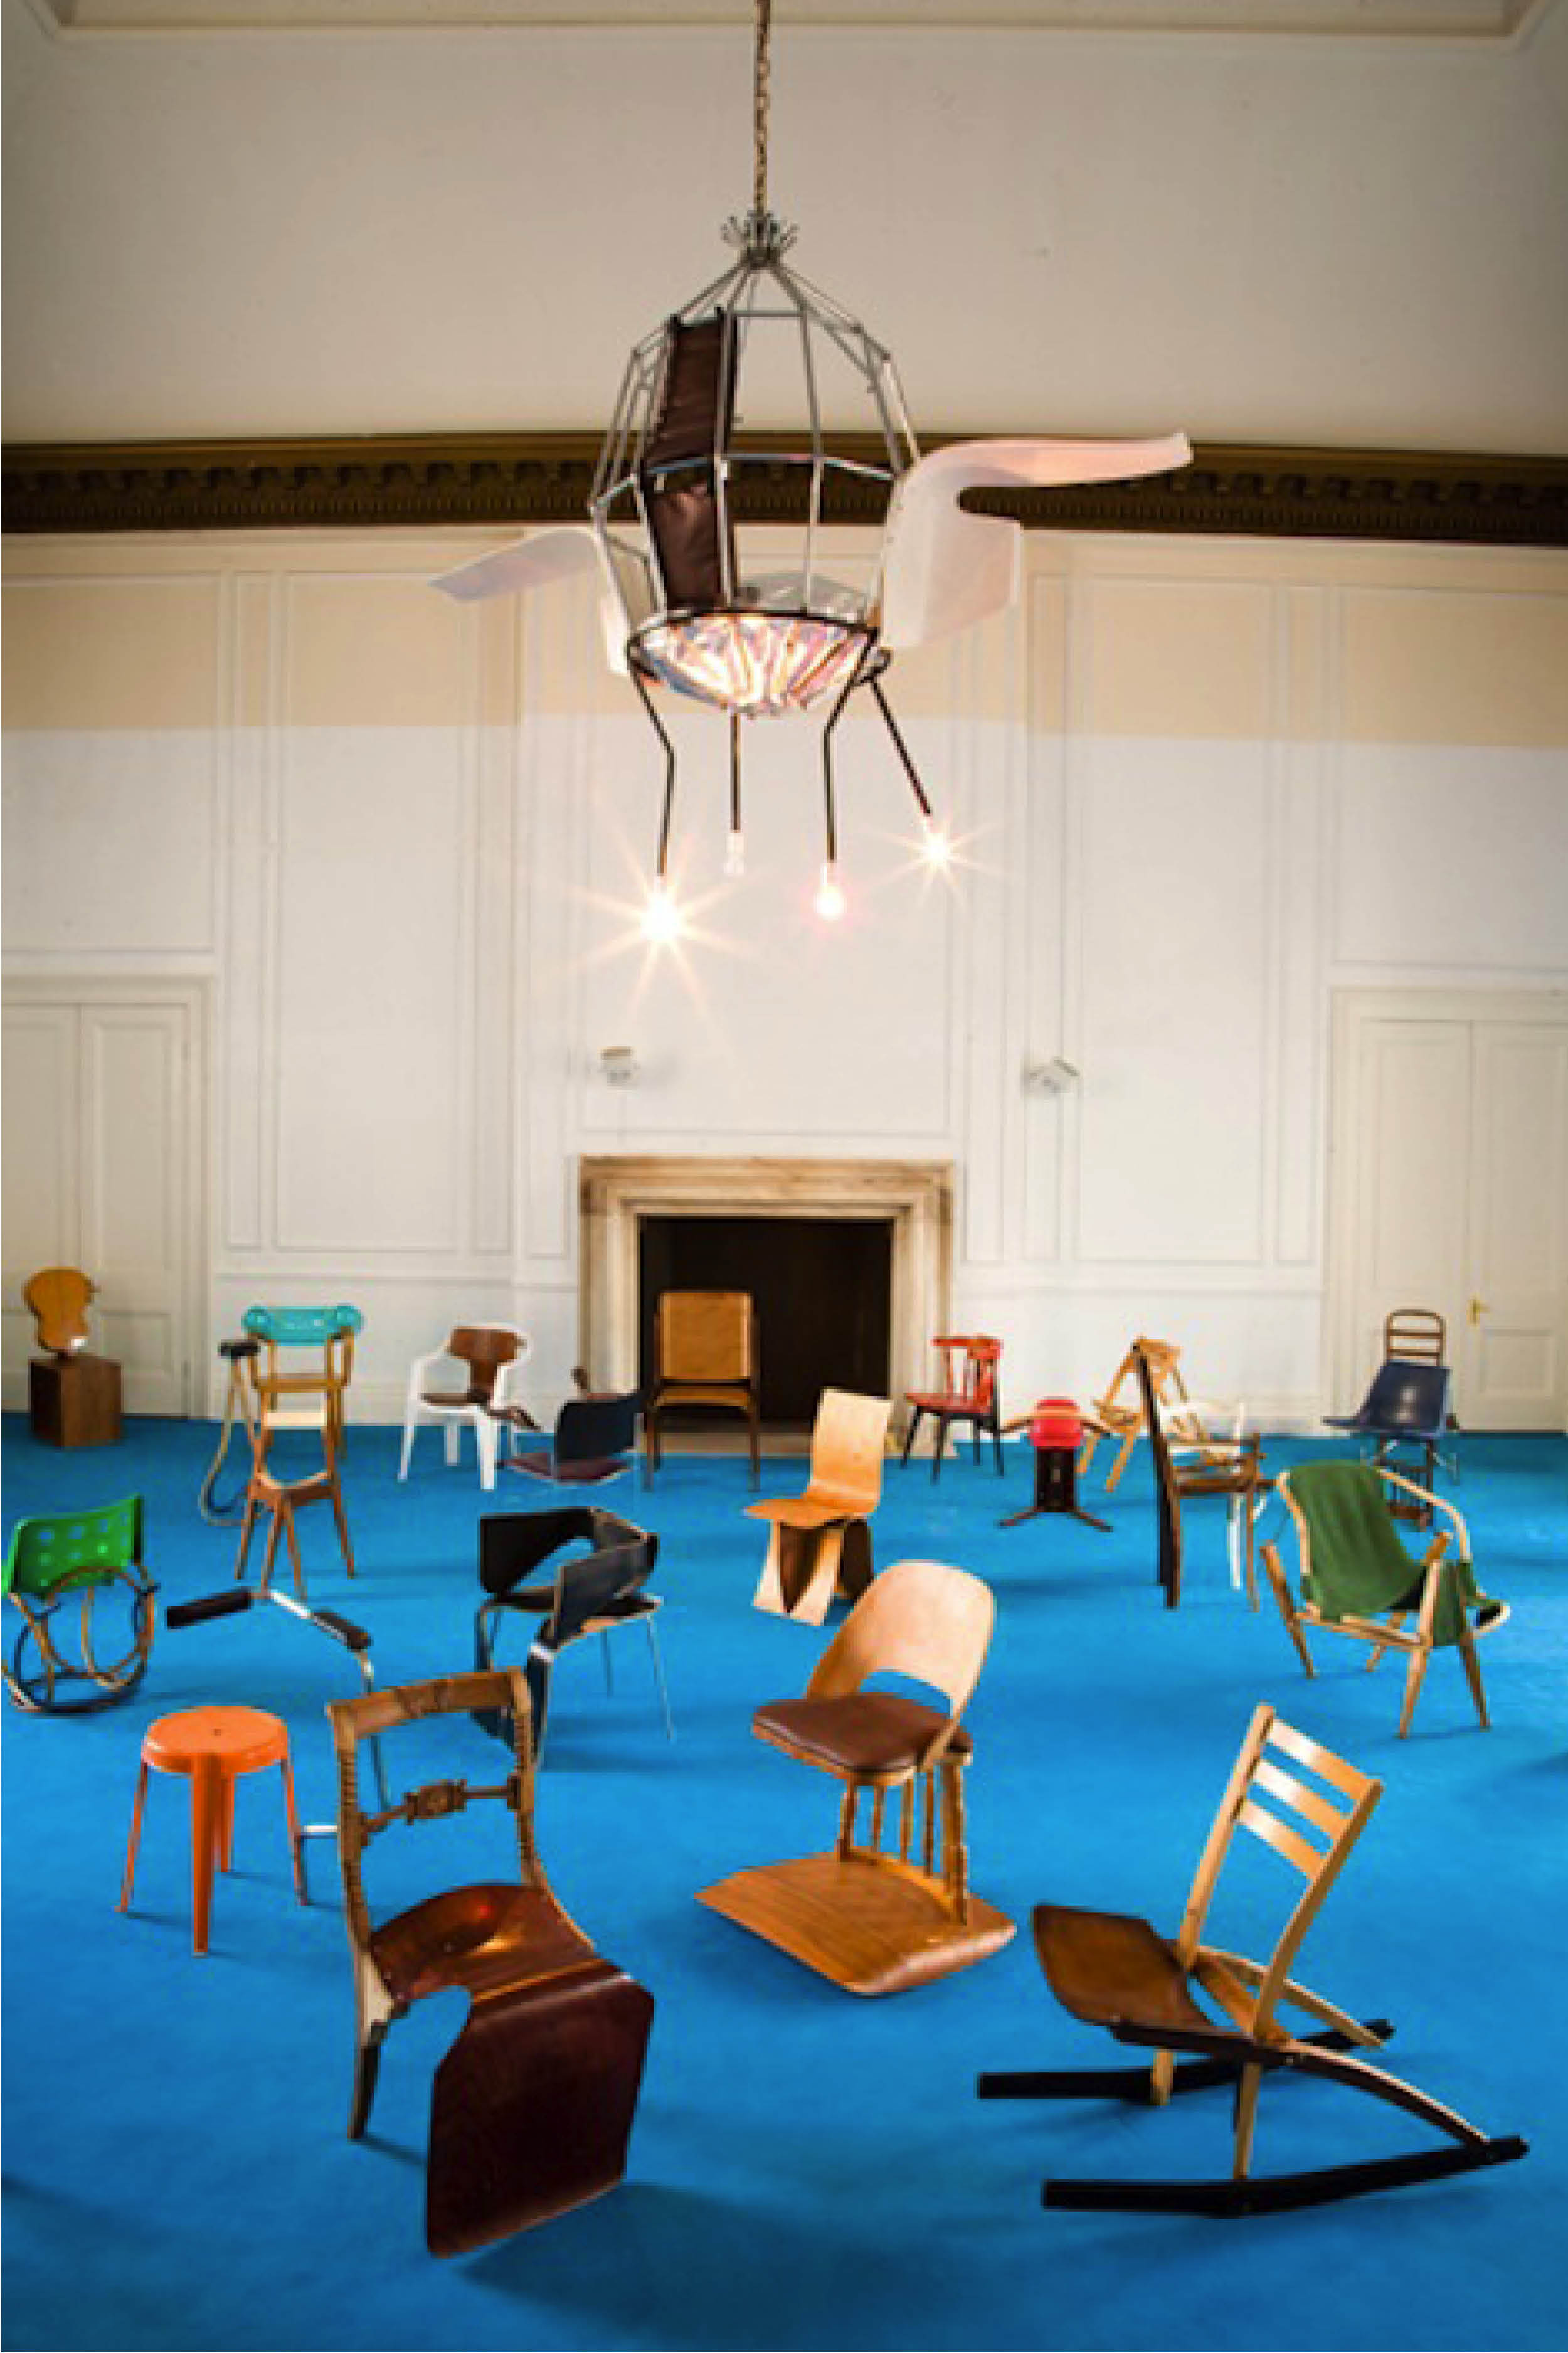 100 Chairs in 100 Days, Martino Gamper, 5 Cromwell Place, 2007